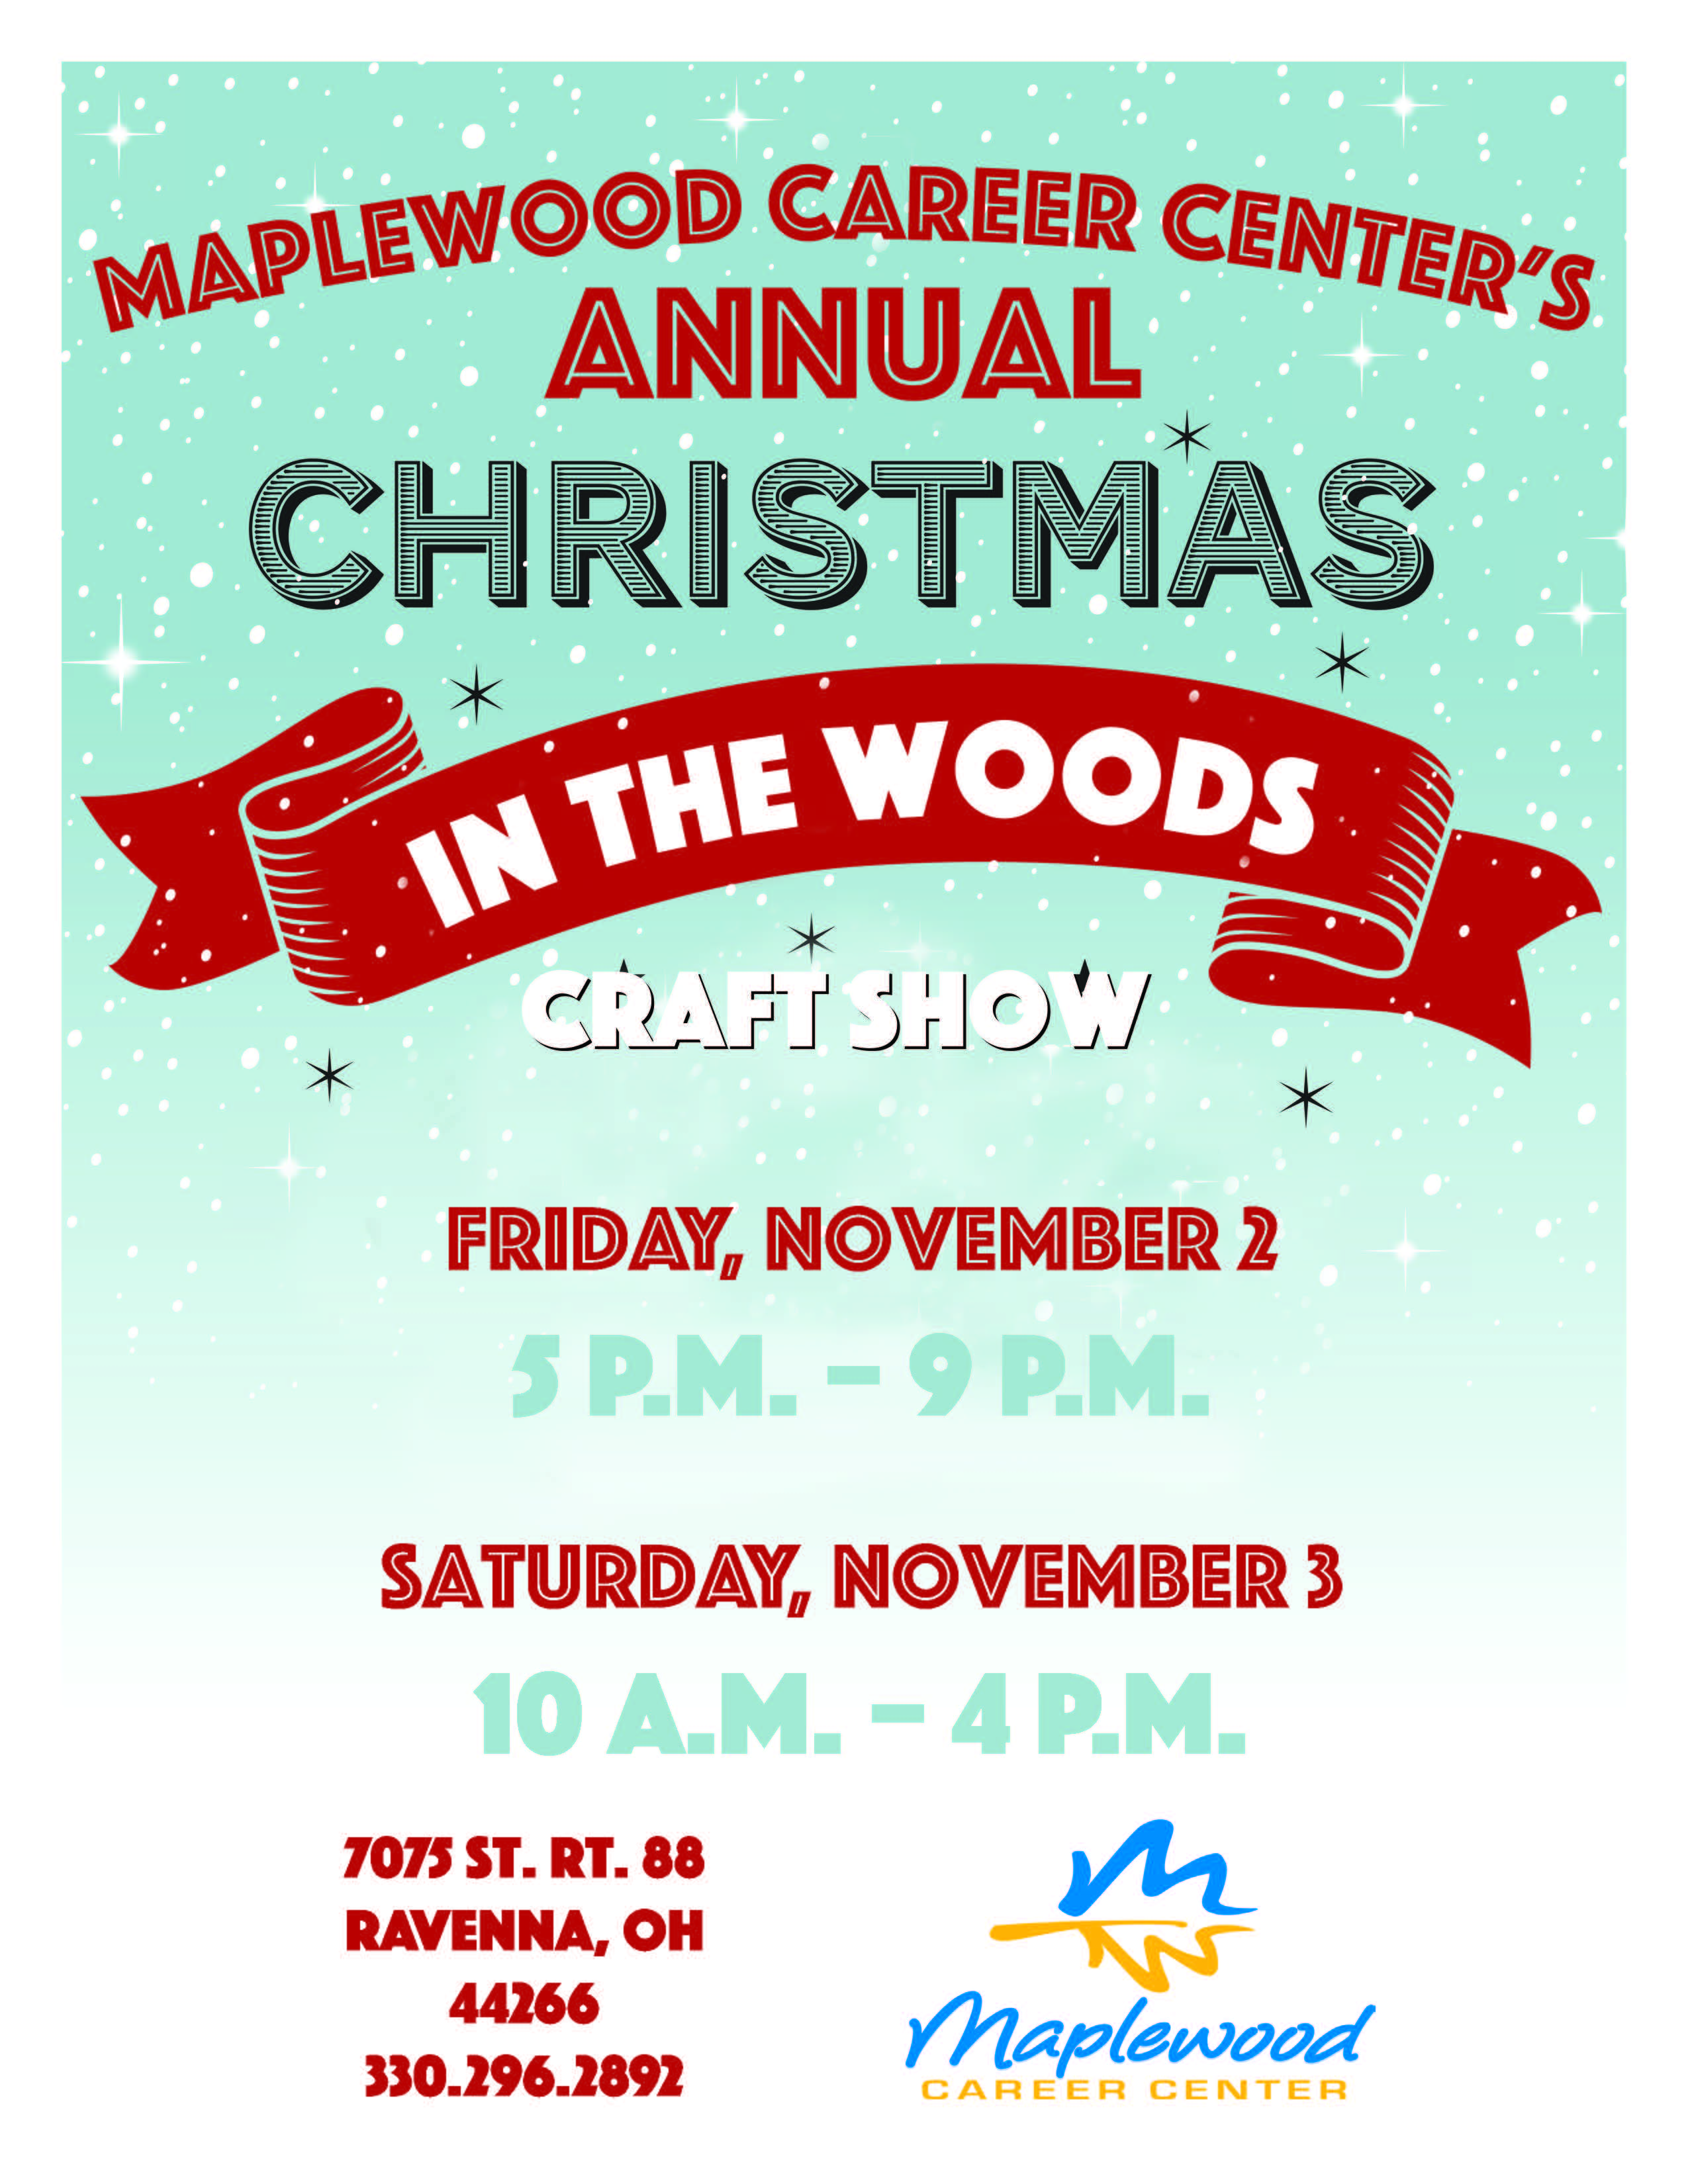 Maplewood Career Center's Annual Christmas In The Woods Craft Show